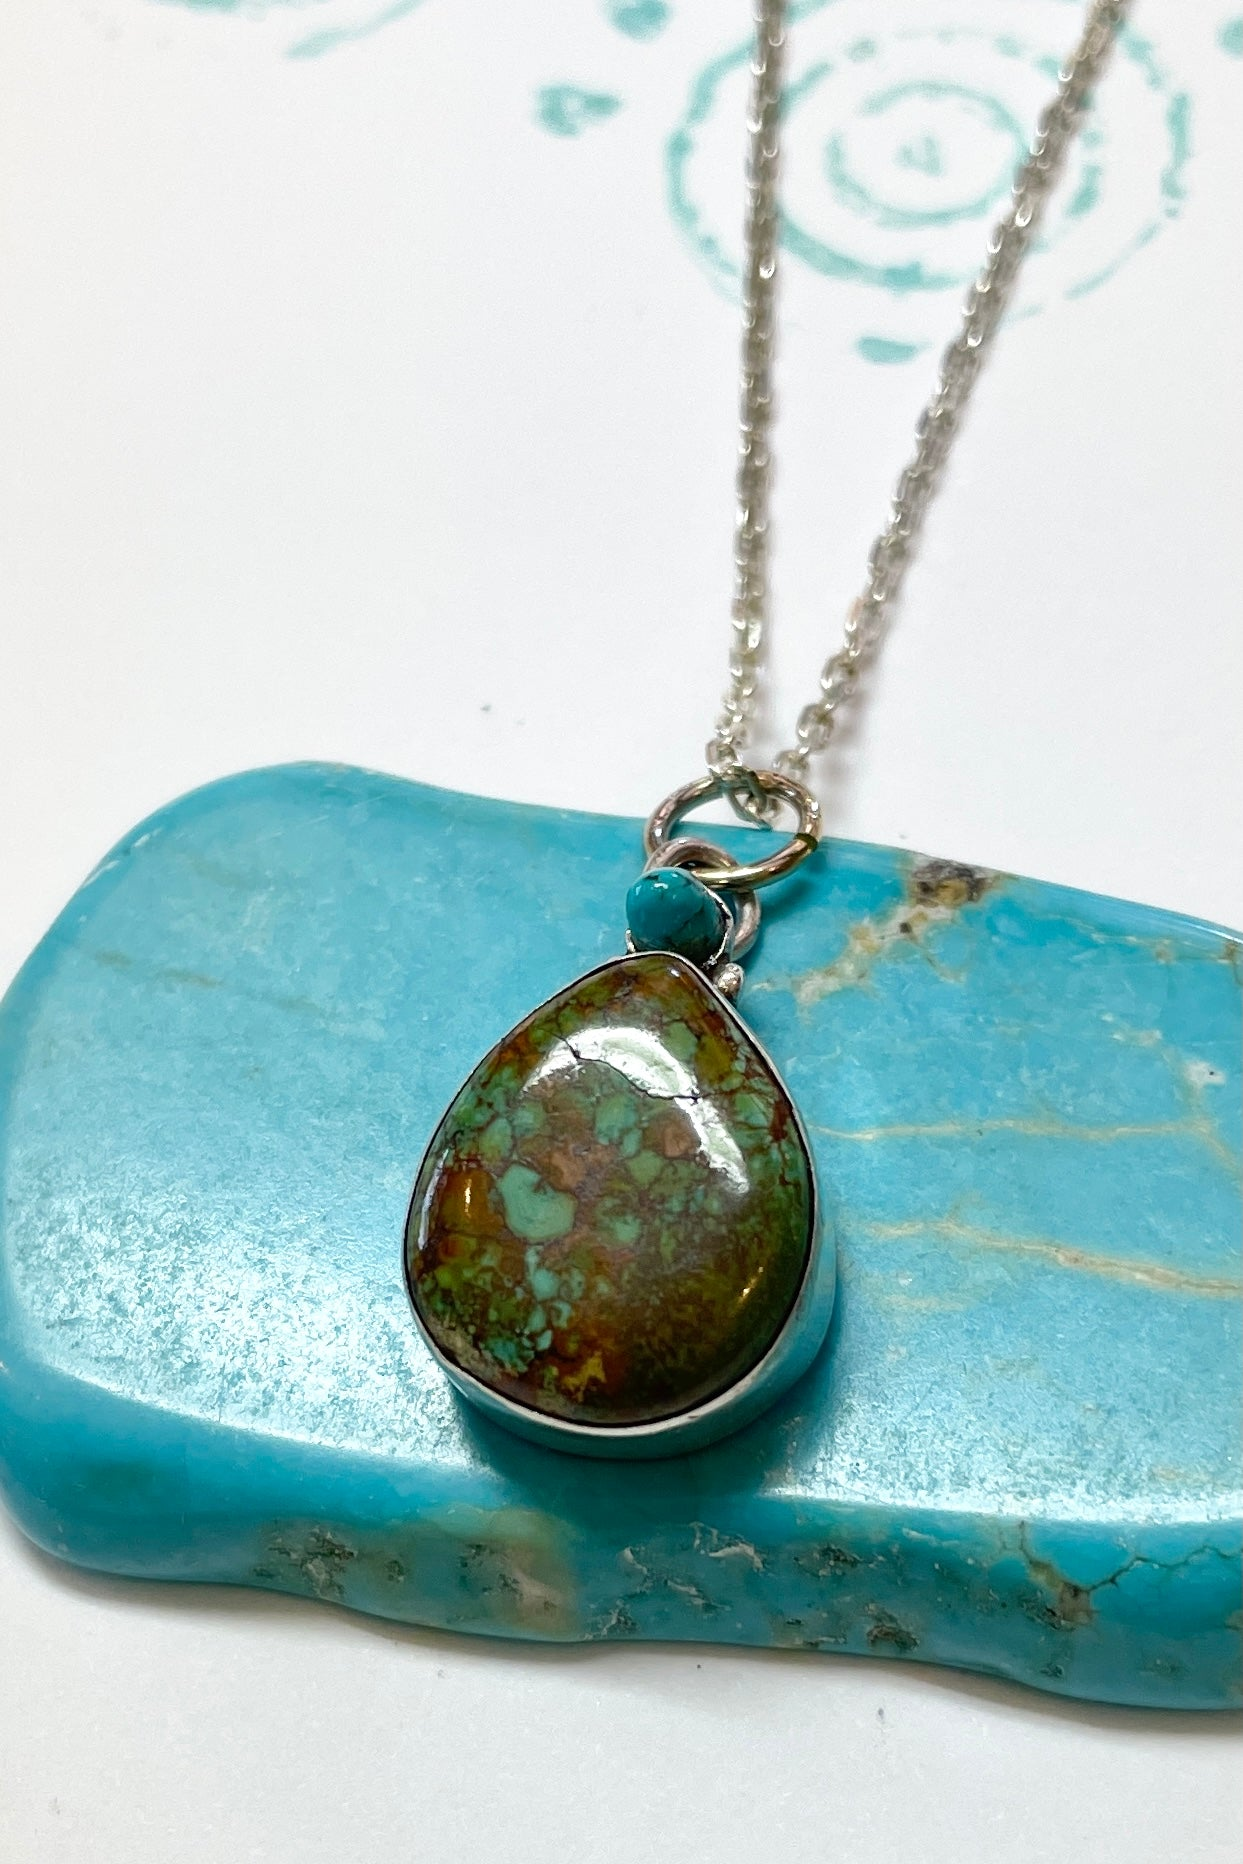 This vintage turquoise pendant has the honest look of a preloved and hand crafted piece. It comes on a silver chain.